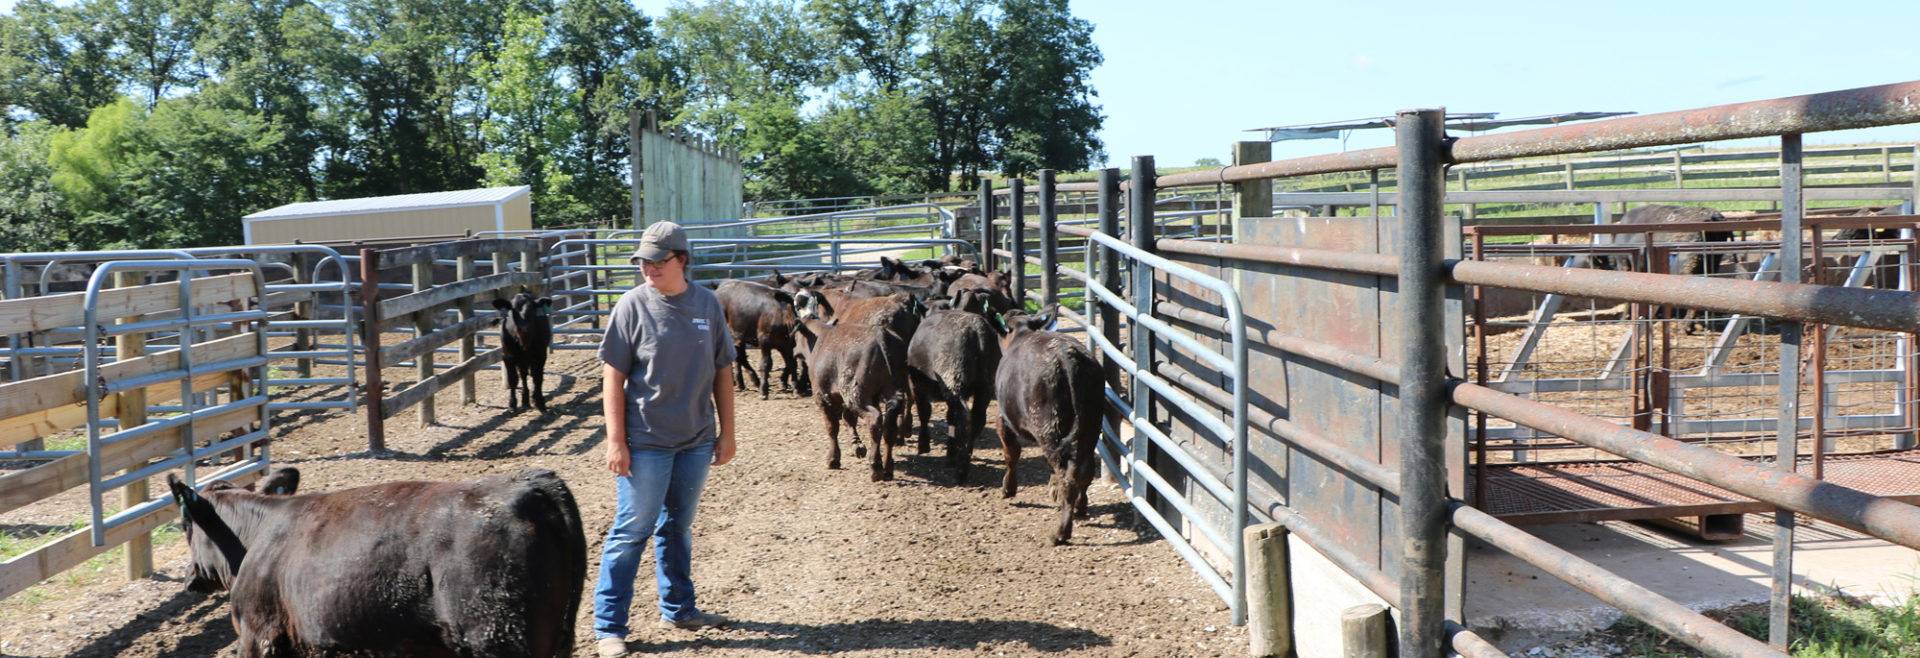 student standing in cattle area with animals